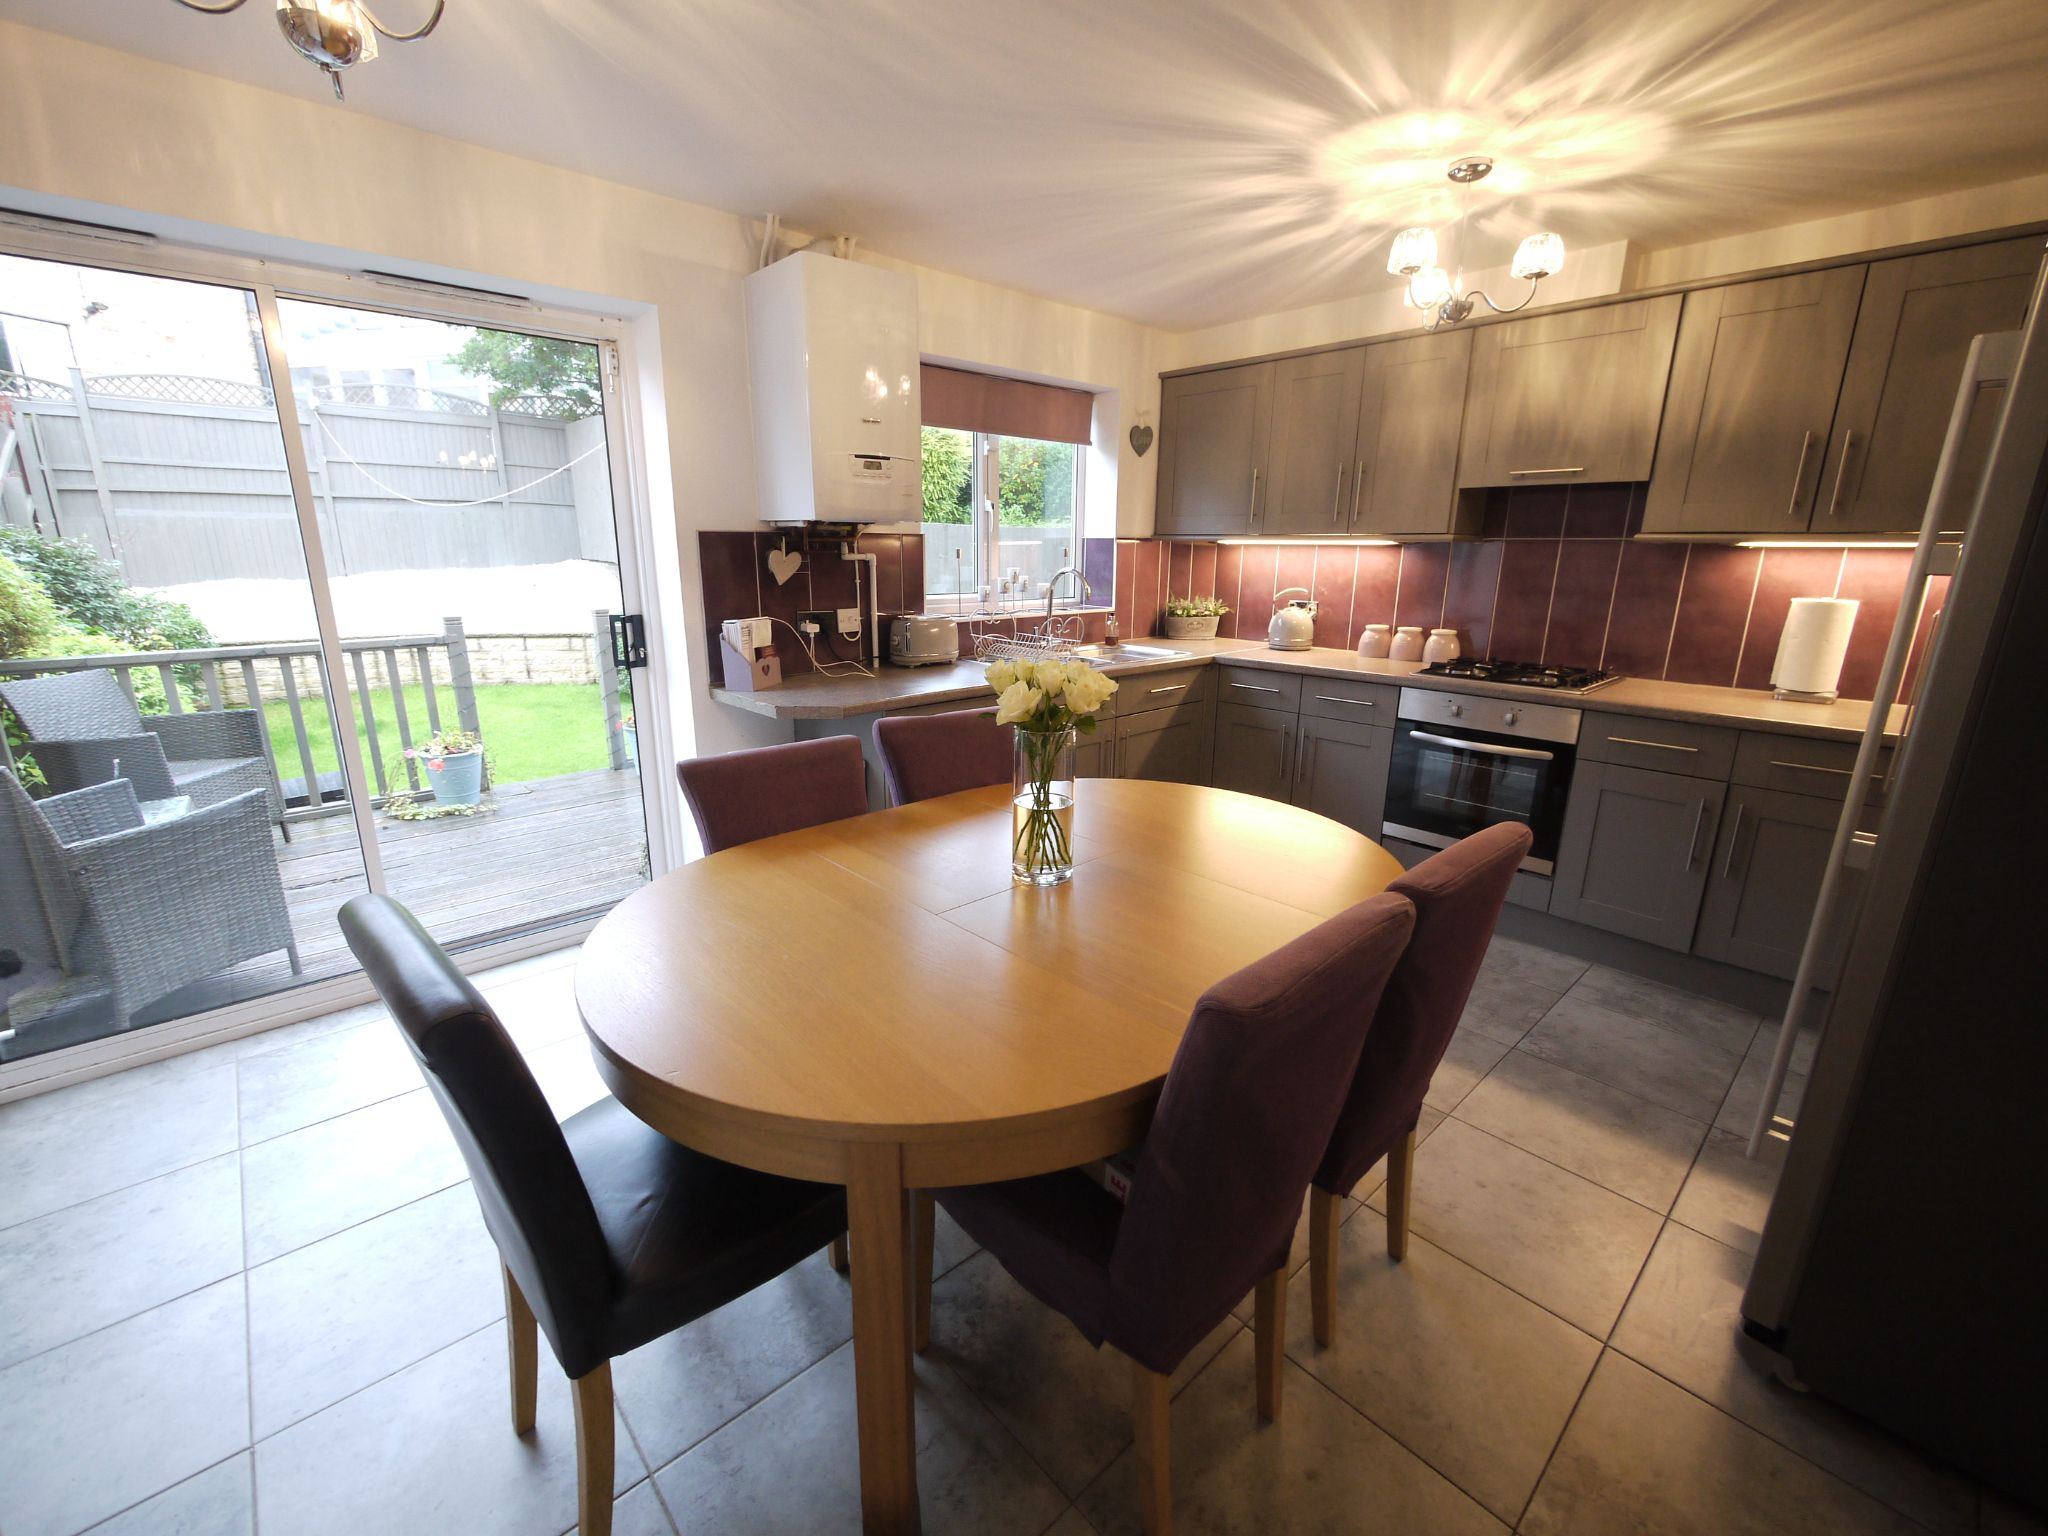 4 bedroom town house For Sale in Brighouse - Dining Kitchen.